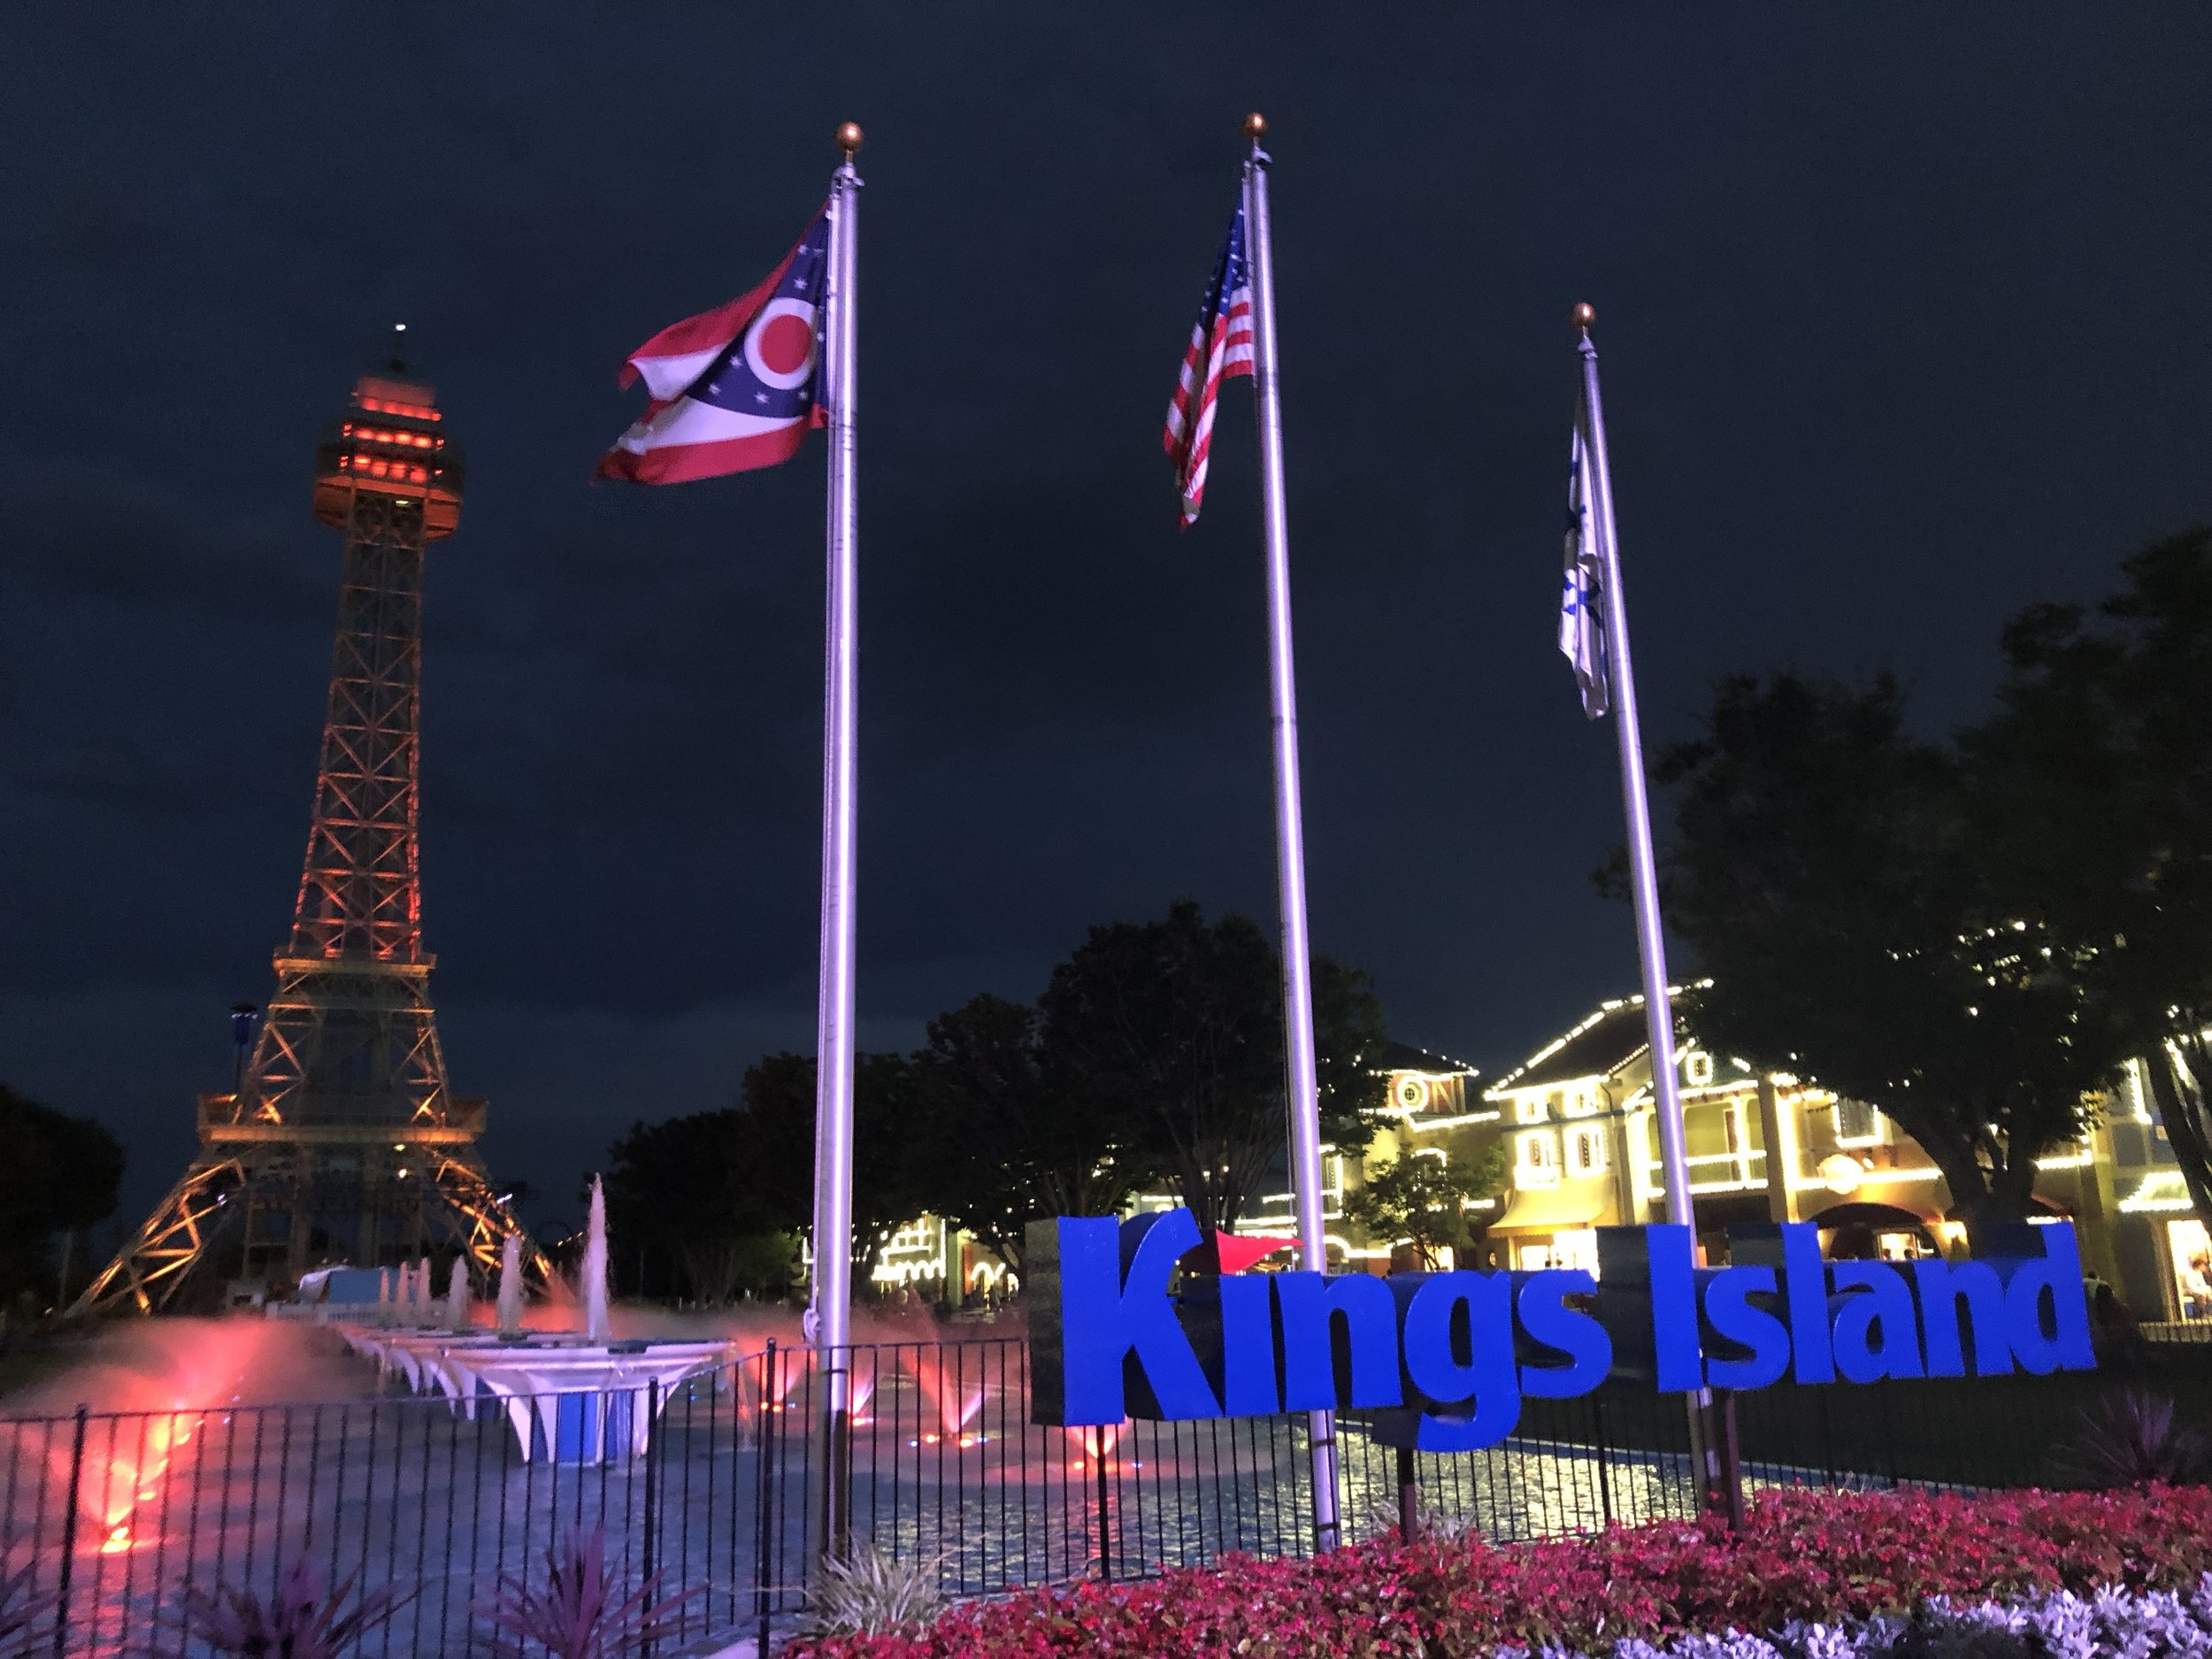 Hoping to visit sister park Kings Dominion in August.